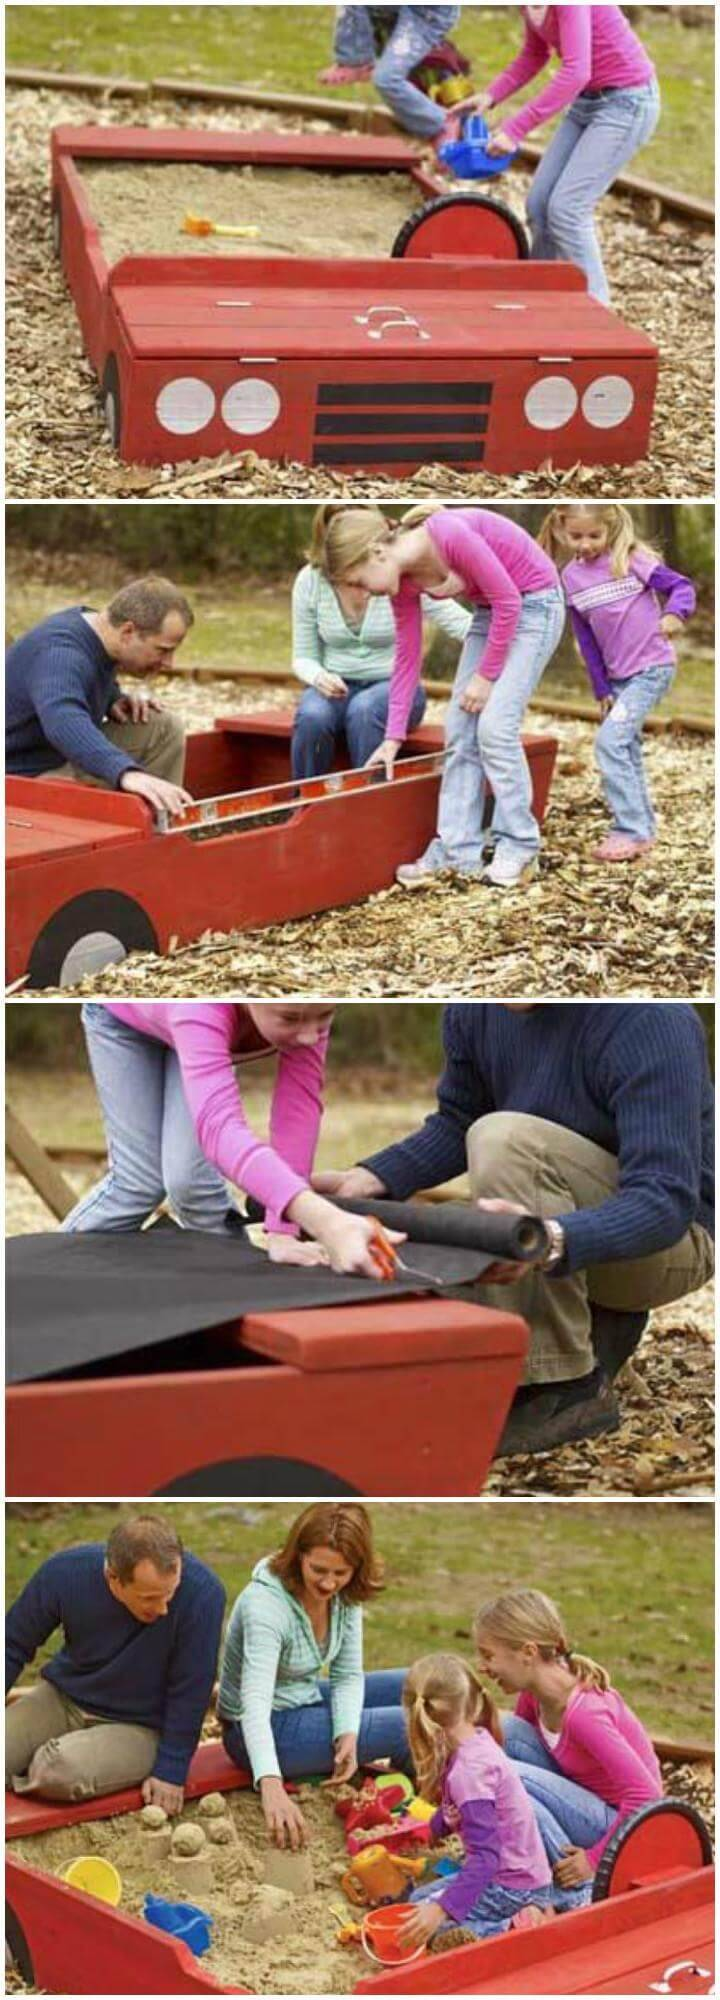 DIY Beautiful Car Sandbox